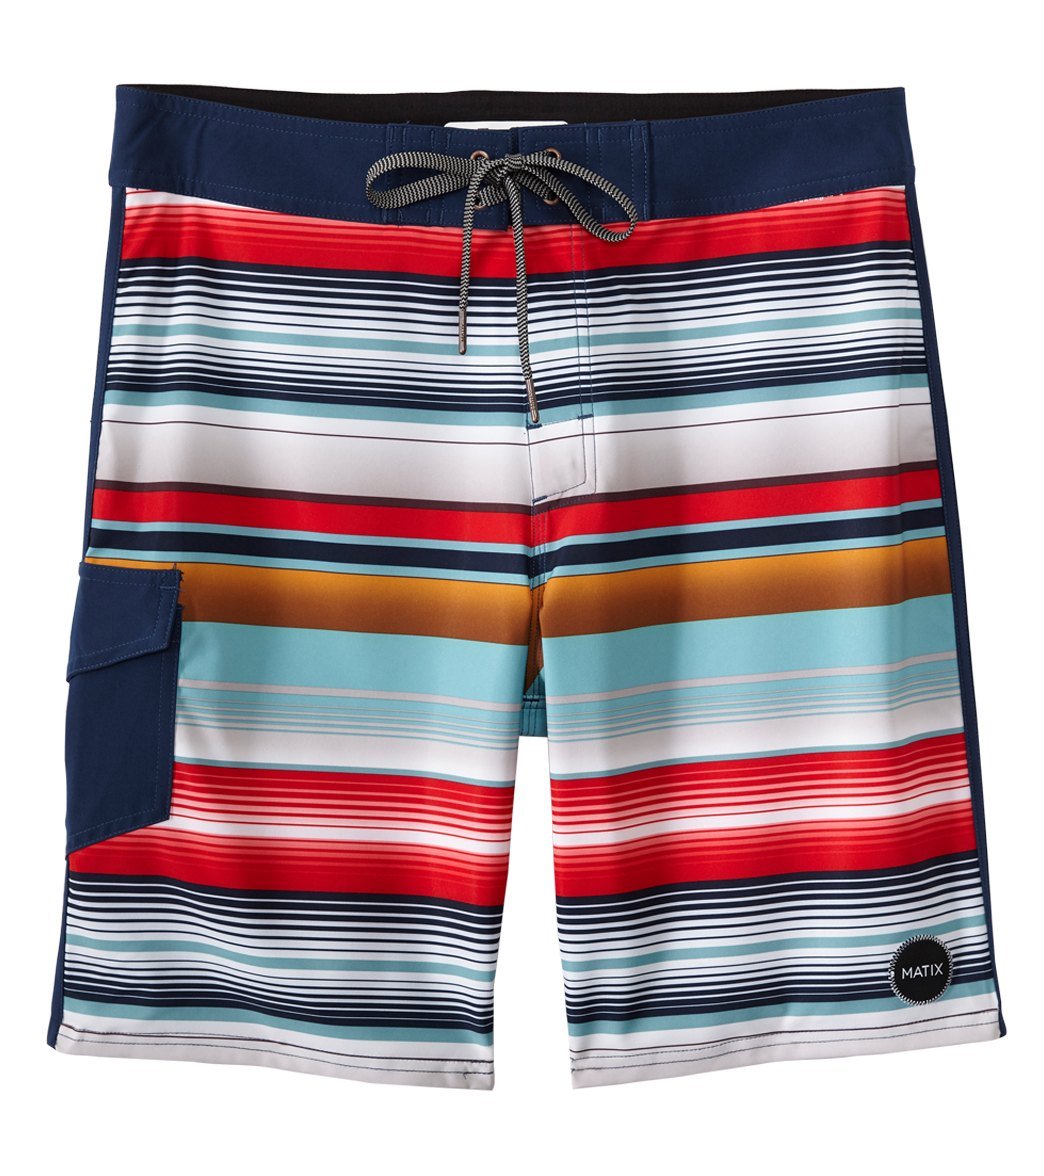 2c765b1873 Matix Men's Cortez Boardshort at SwimOutlet.com - Free Shipping